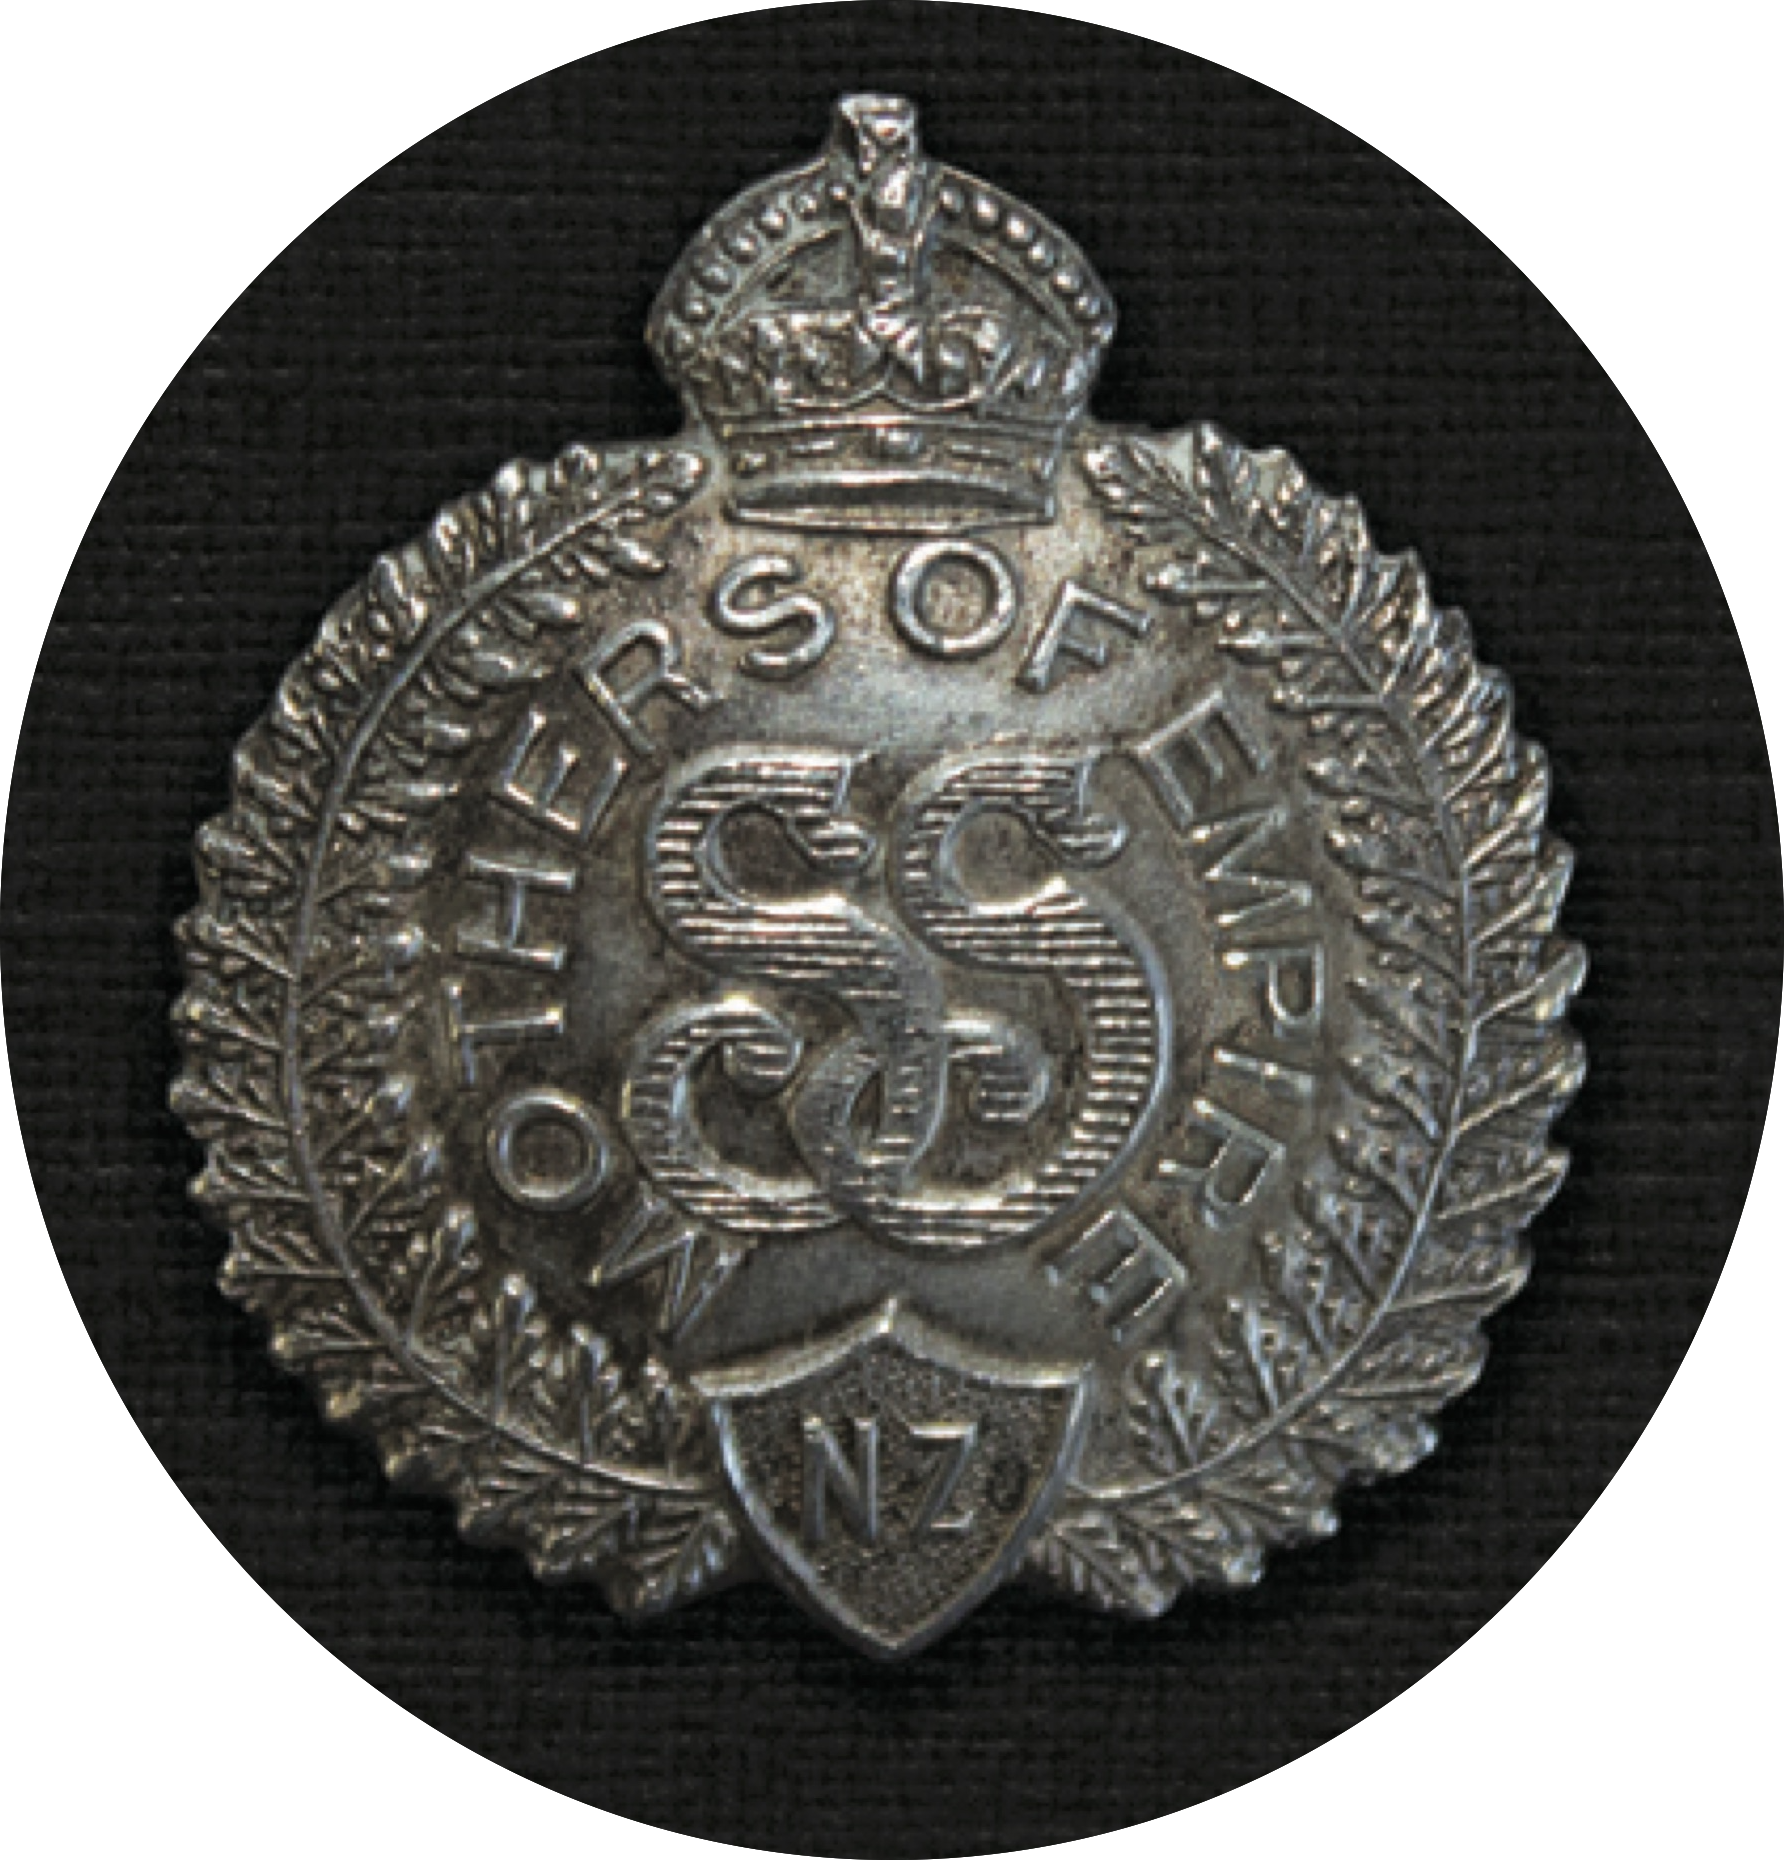 A Mothers of Empire Badge